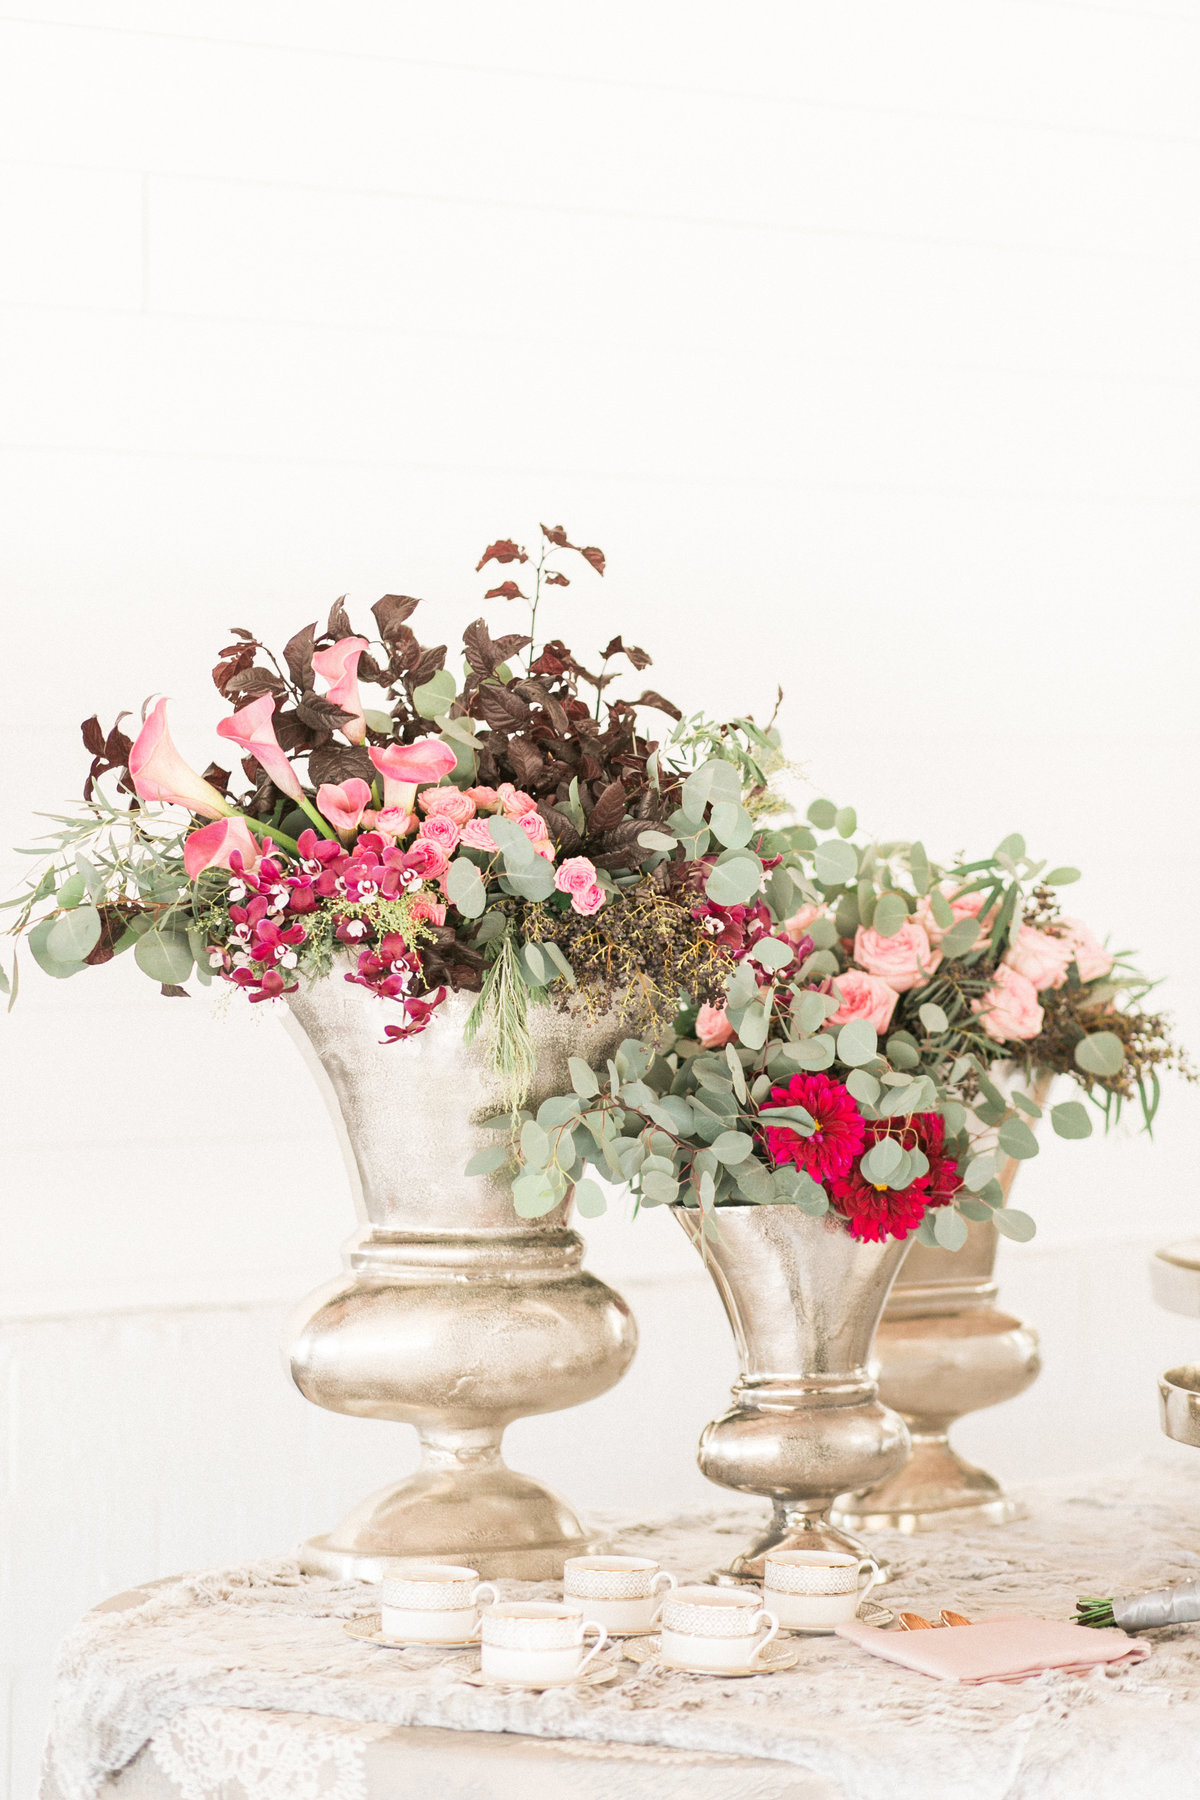 Winter Floral Decor